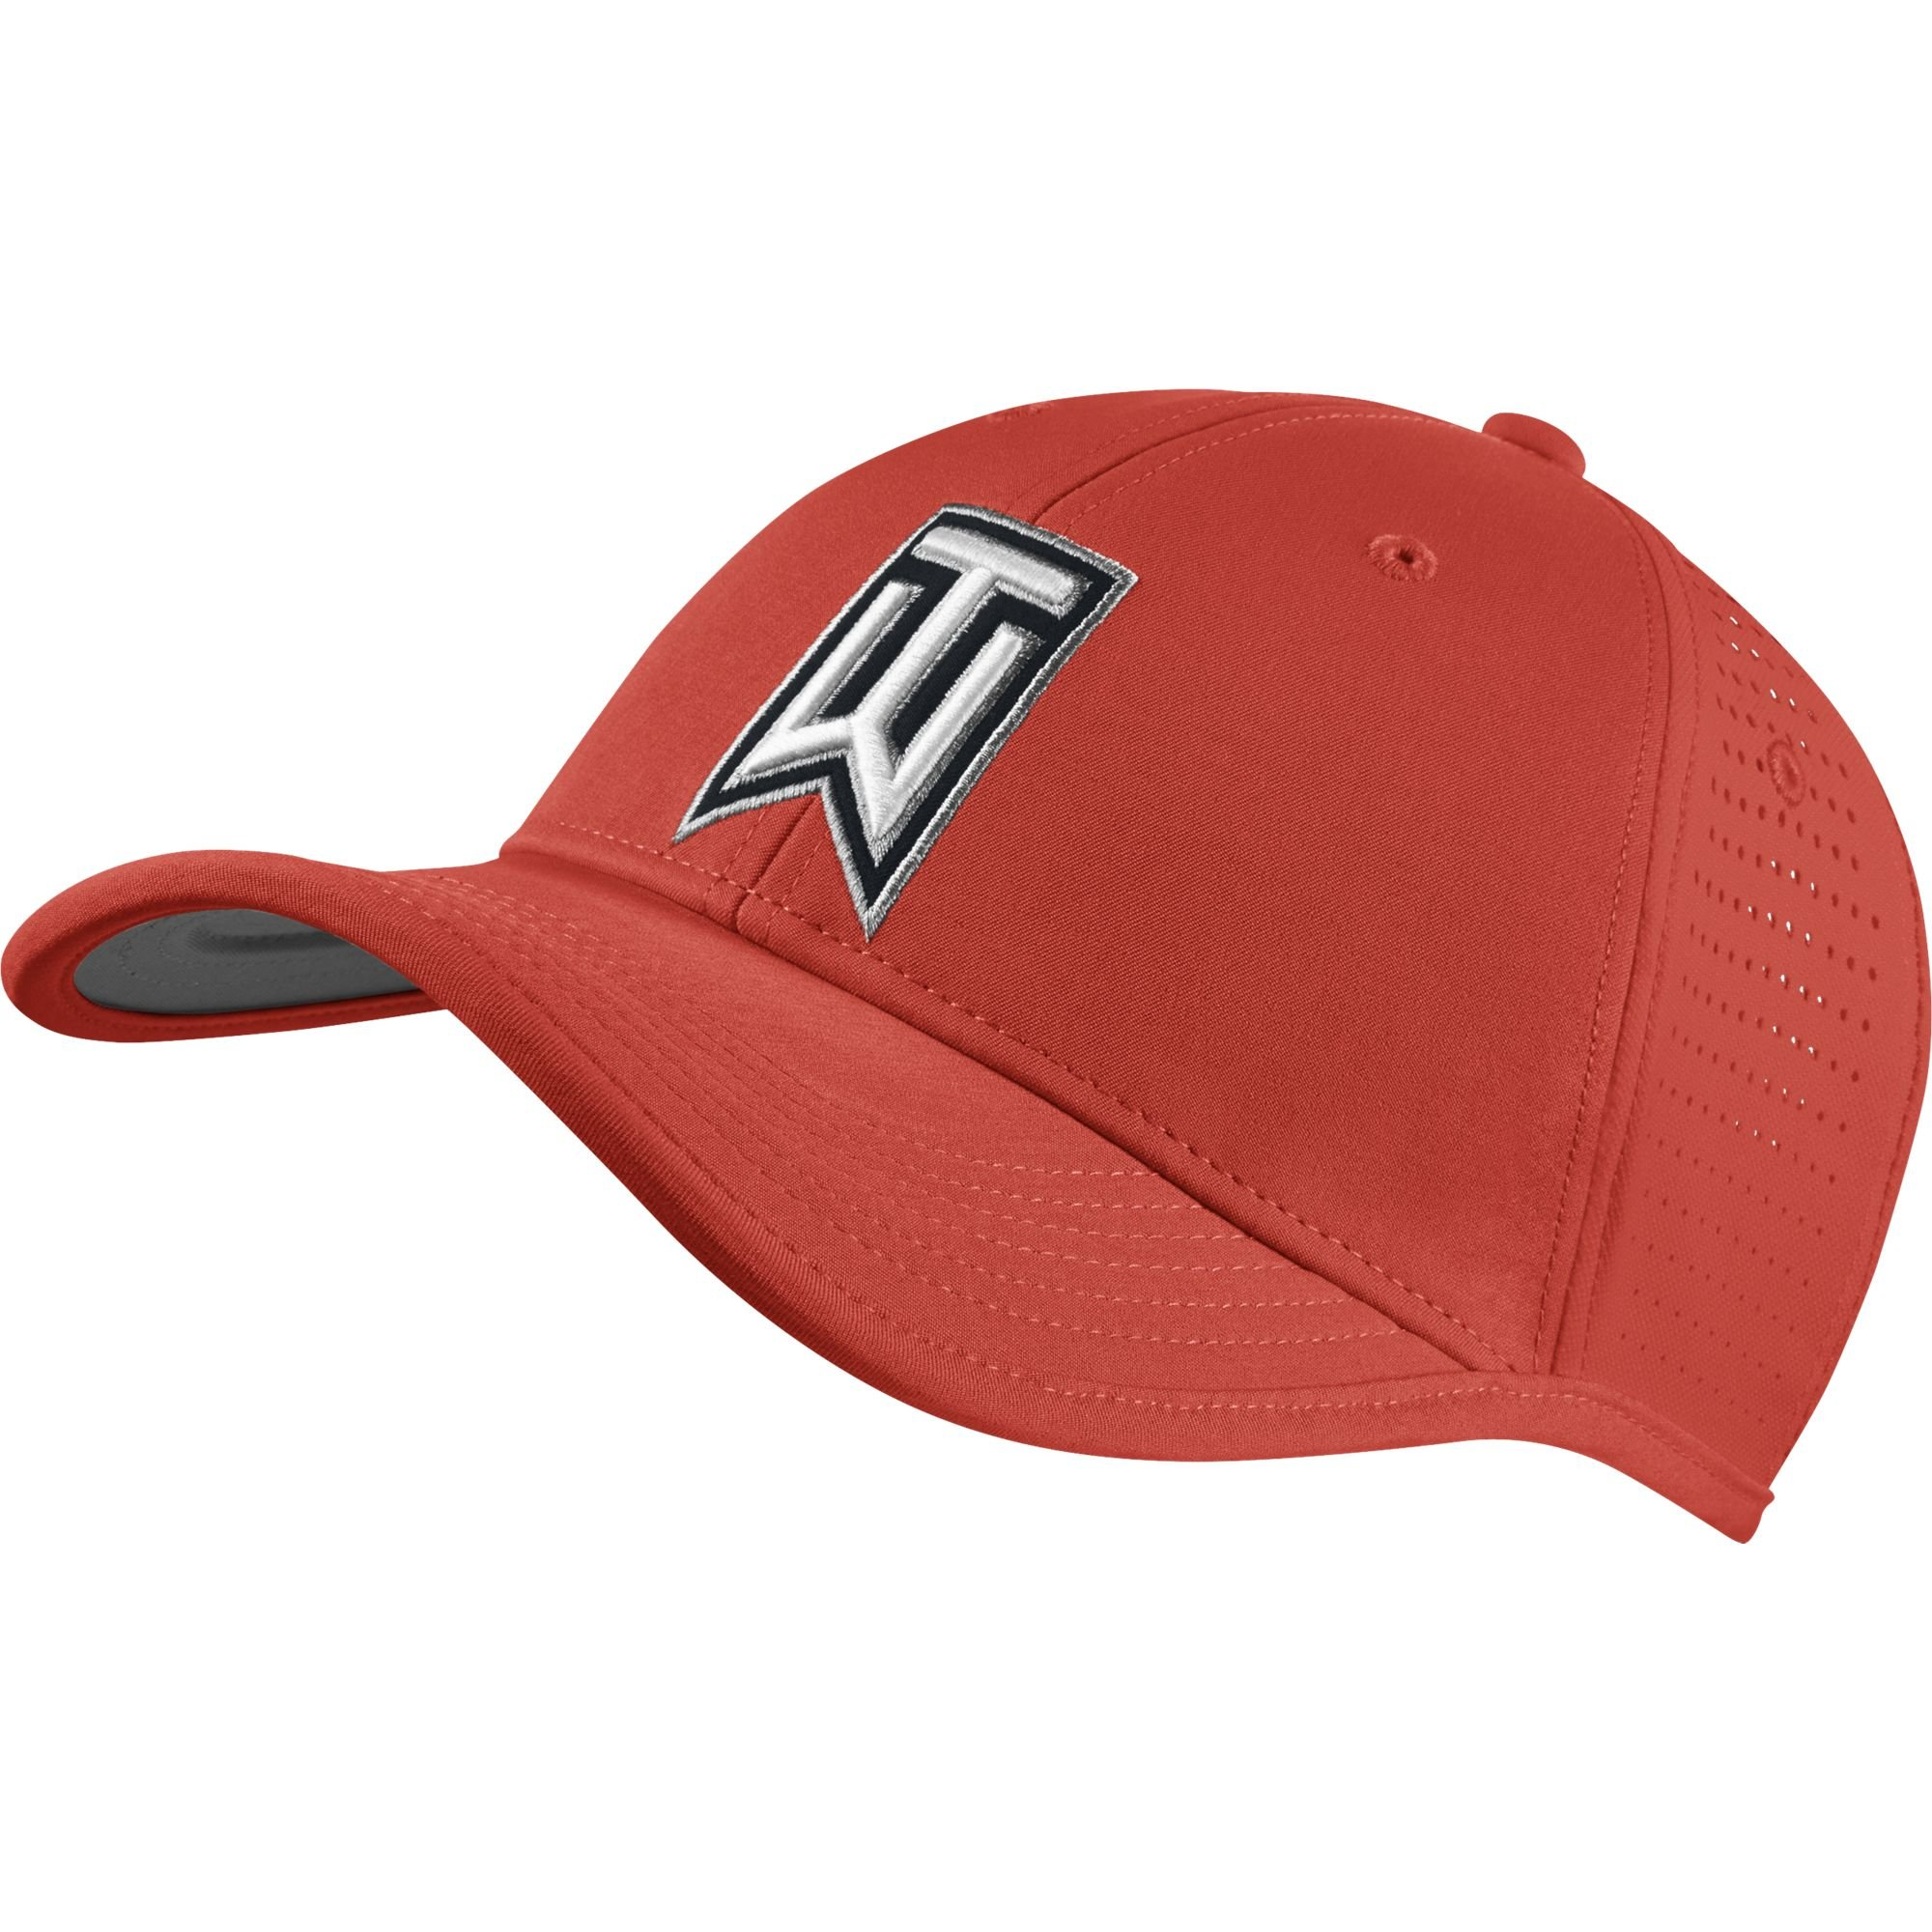 NIKE Golf CLOSEOUT TW Ultralight Tour Adjustable Hat- Assorted Colors 726291 (Light Crimson/Black)